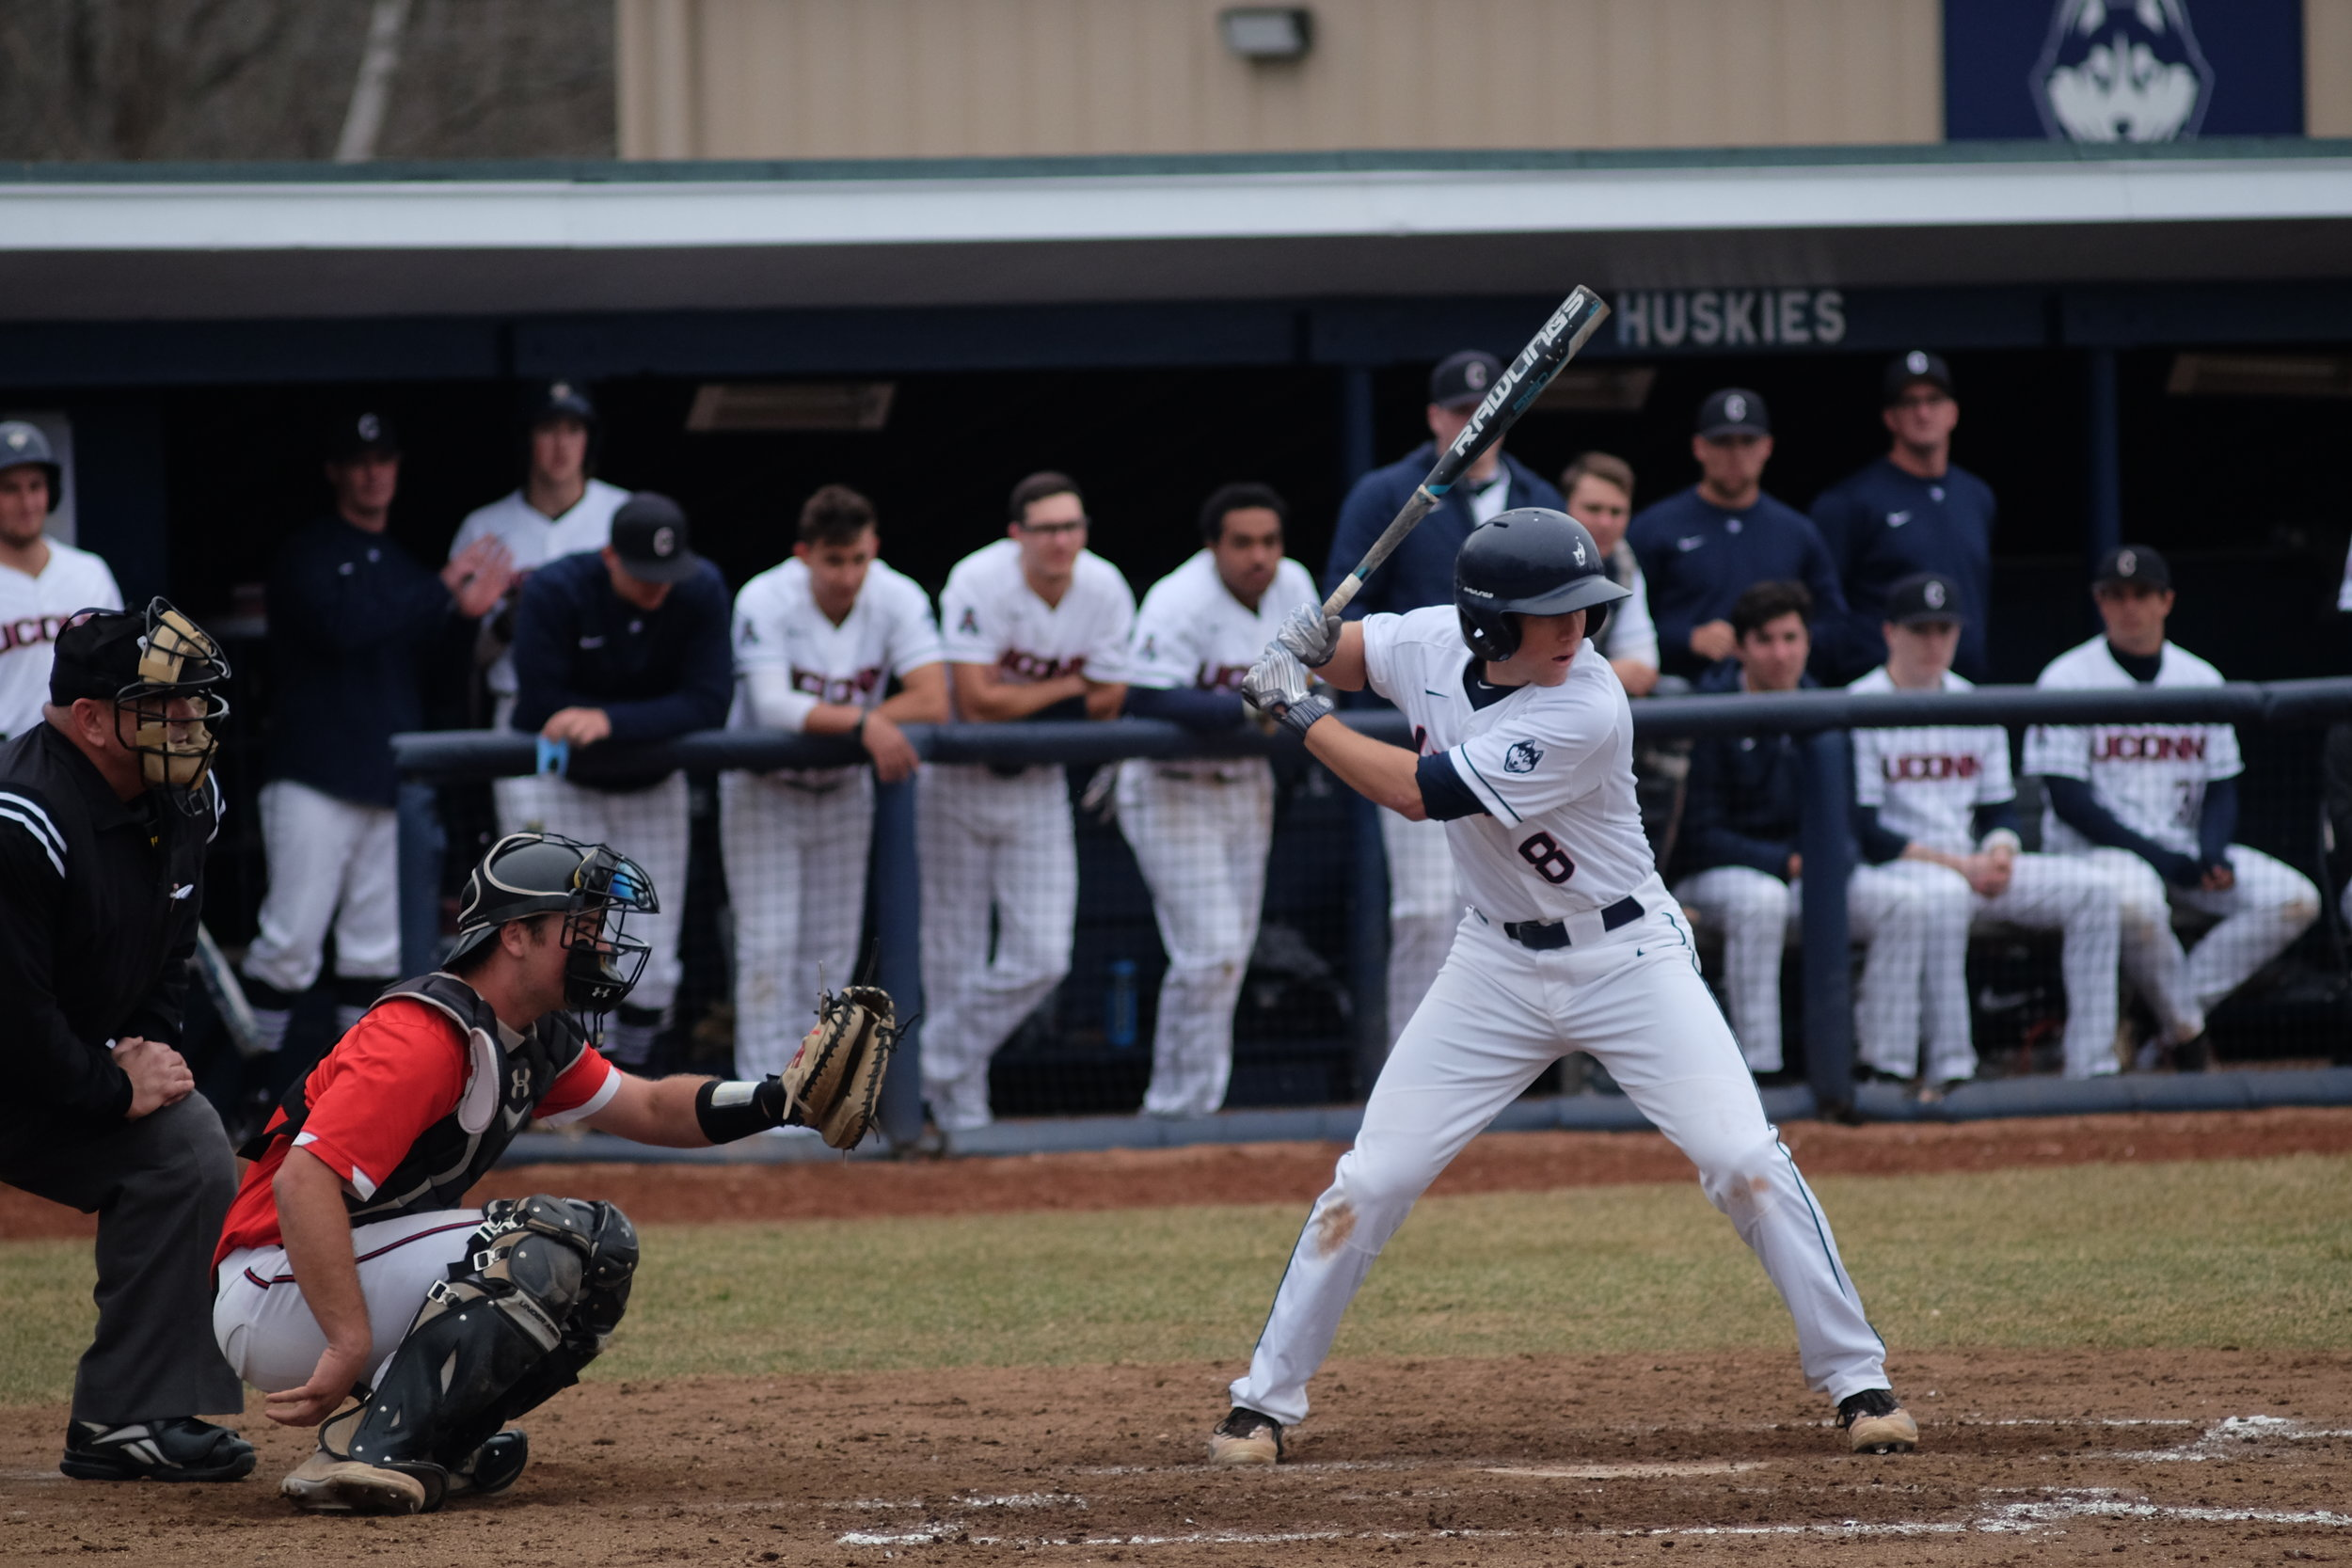 The Huskies are right back at J.O. Christian Field tomorrow for a 3 p.m. tilt against CCSU. (Jon Sammis/The Daily Campus)